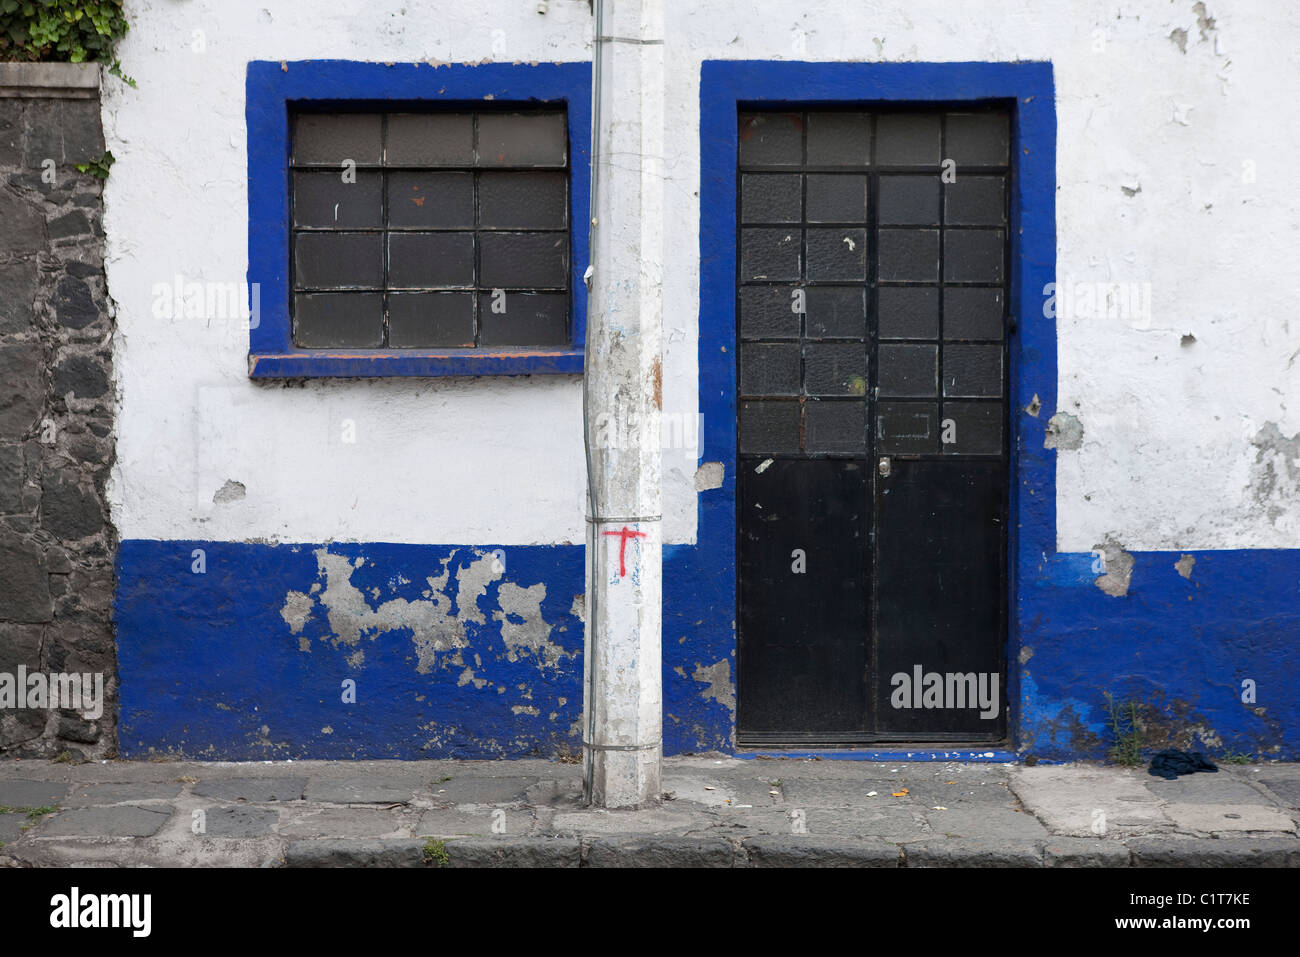 Dilapidated building exterior - Stock Image